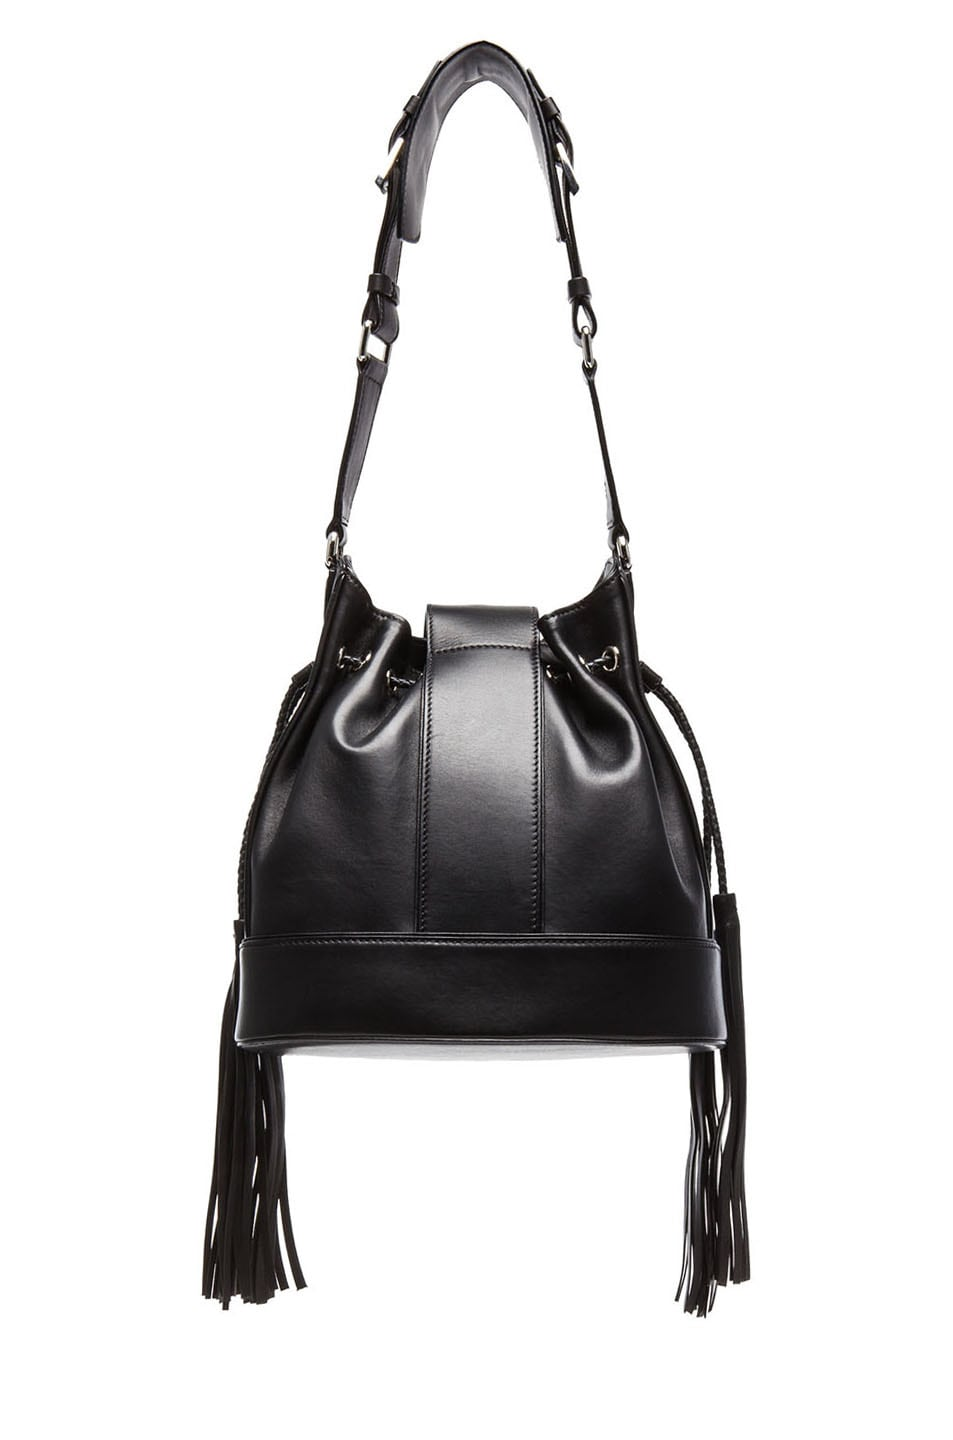 bc8ef352cb7d Image 2 of VERSACE Fringe Leather Bucket Bag with Medusa Head in Black    Silver